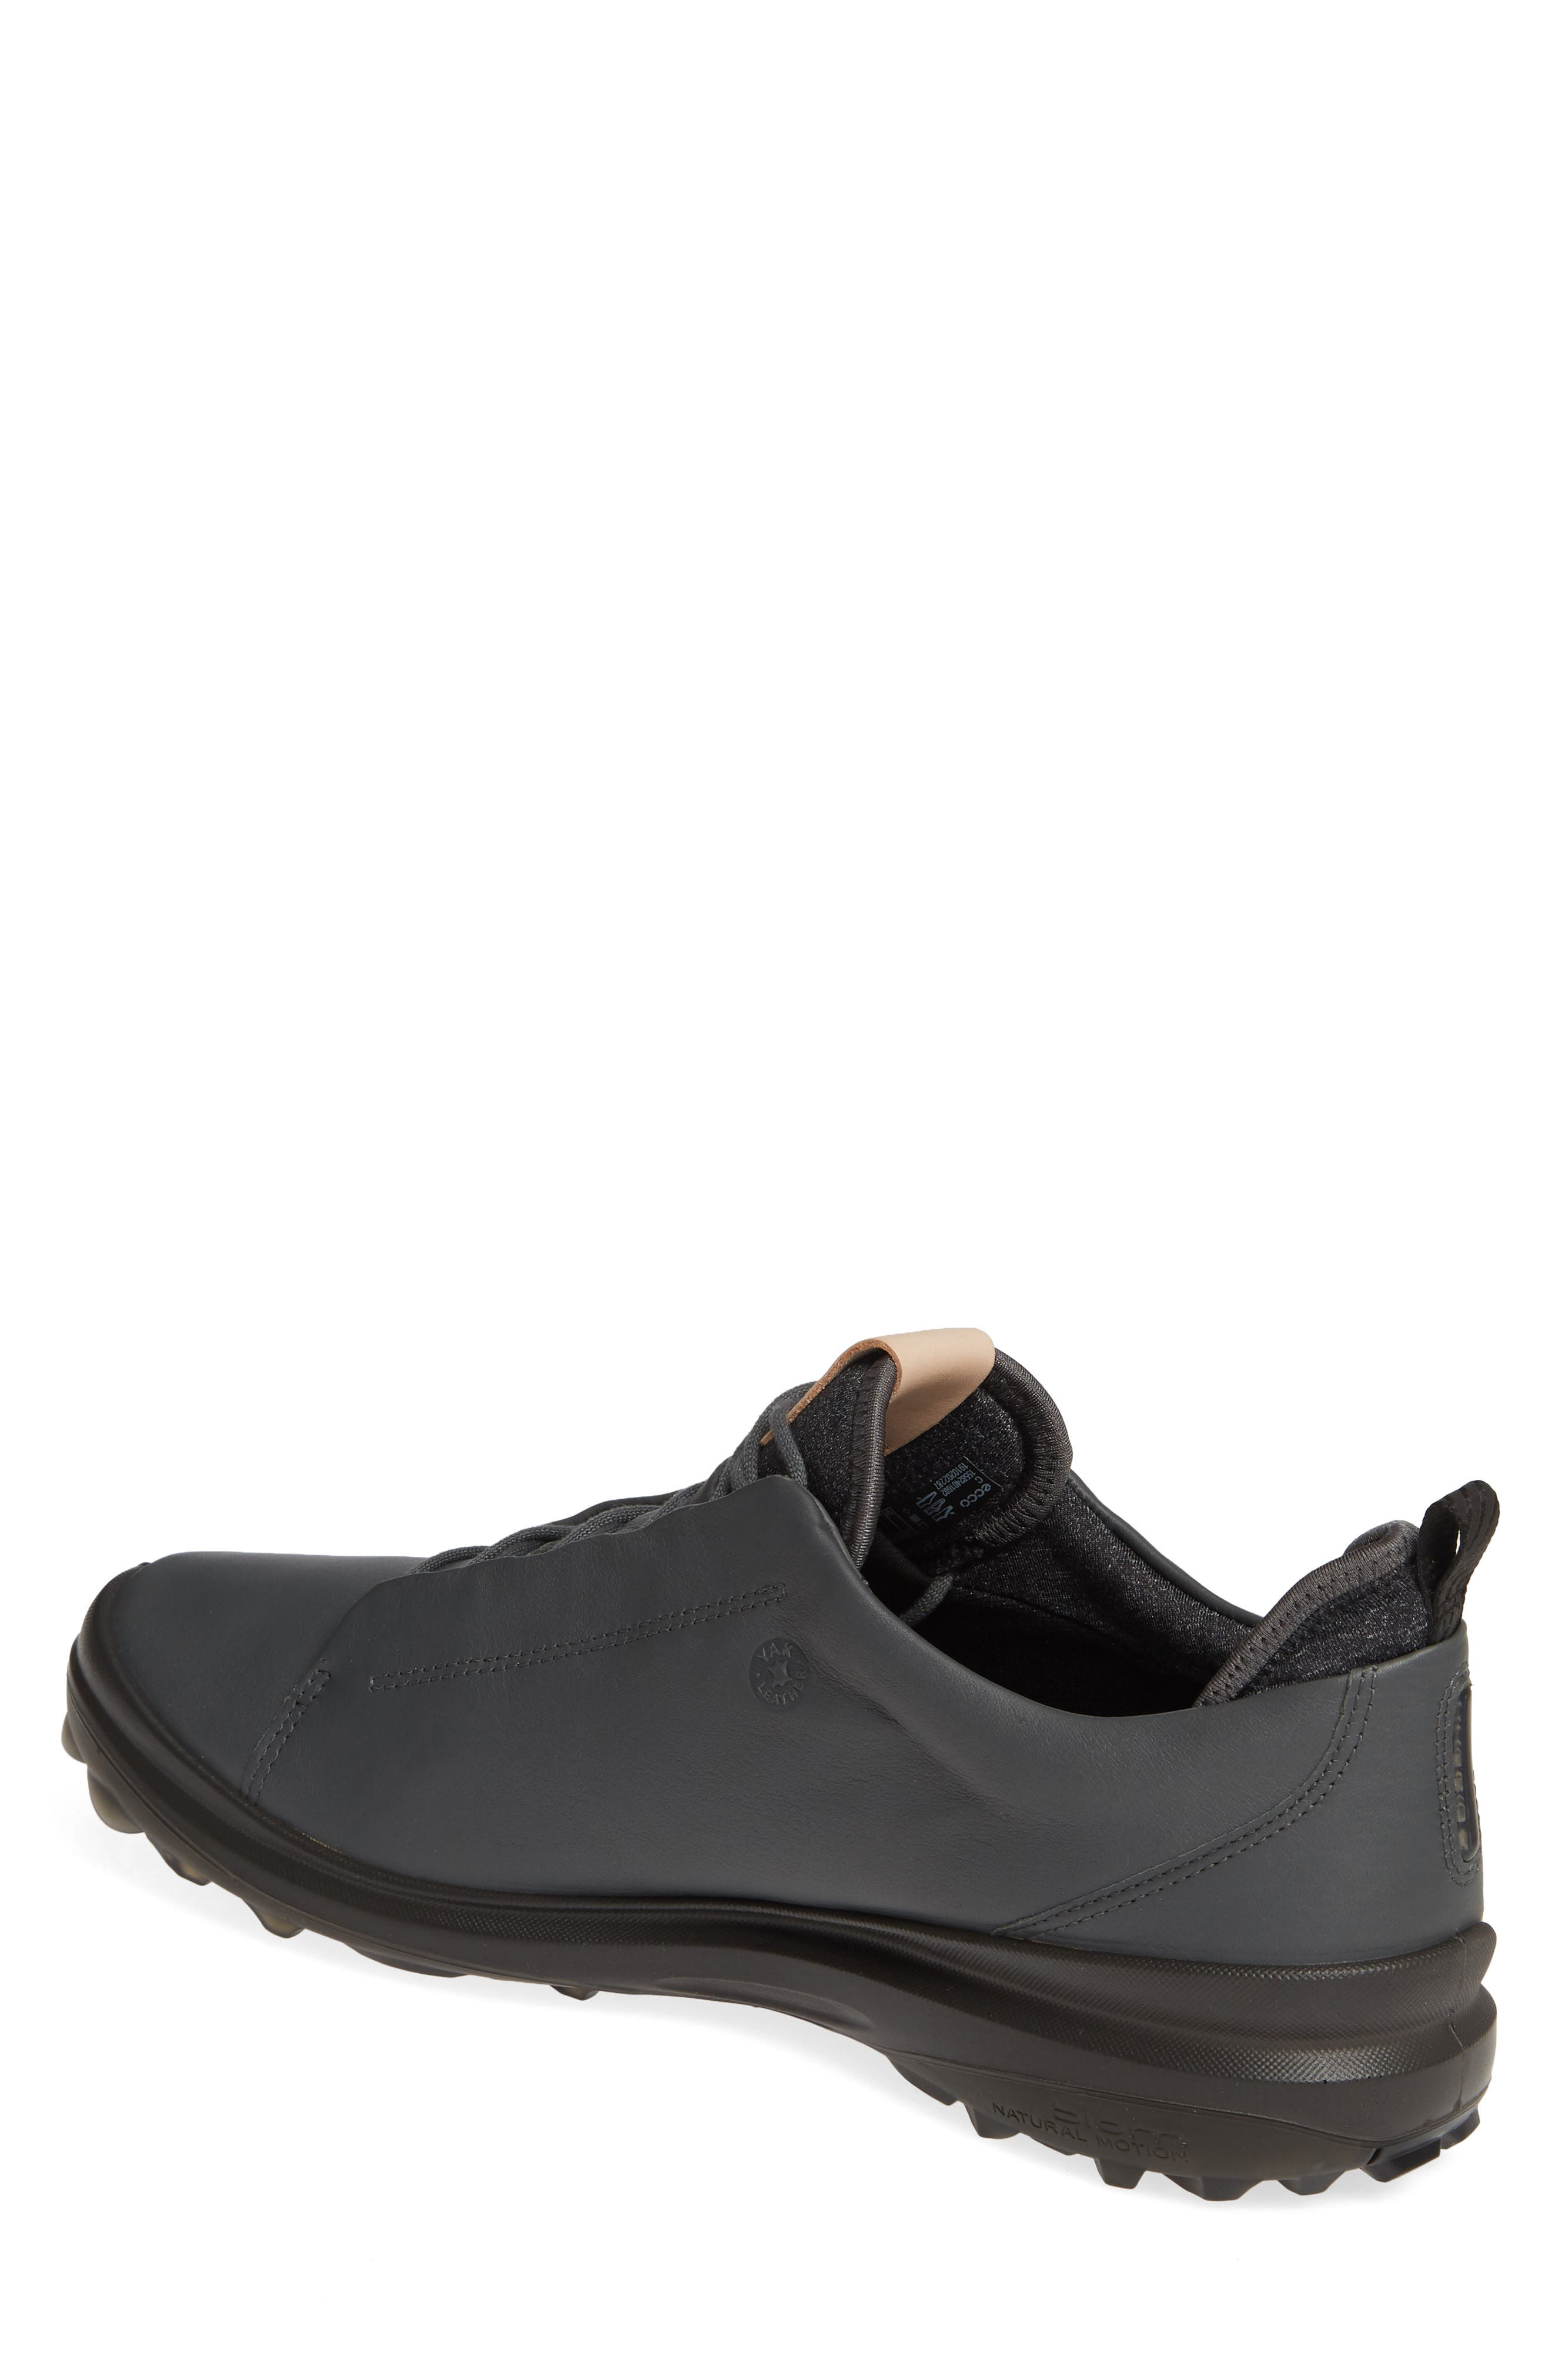 ECCO, BIOM<sup>®</sup> Hybrid 3 OL Gore-Tex<sup>®</sup> Golf Shoe, Alternate thumbnail 2, color, DARK SHADOW LEATHER